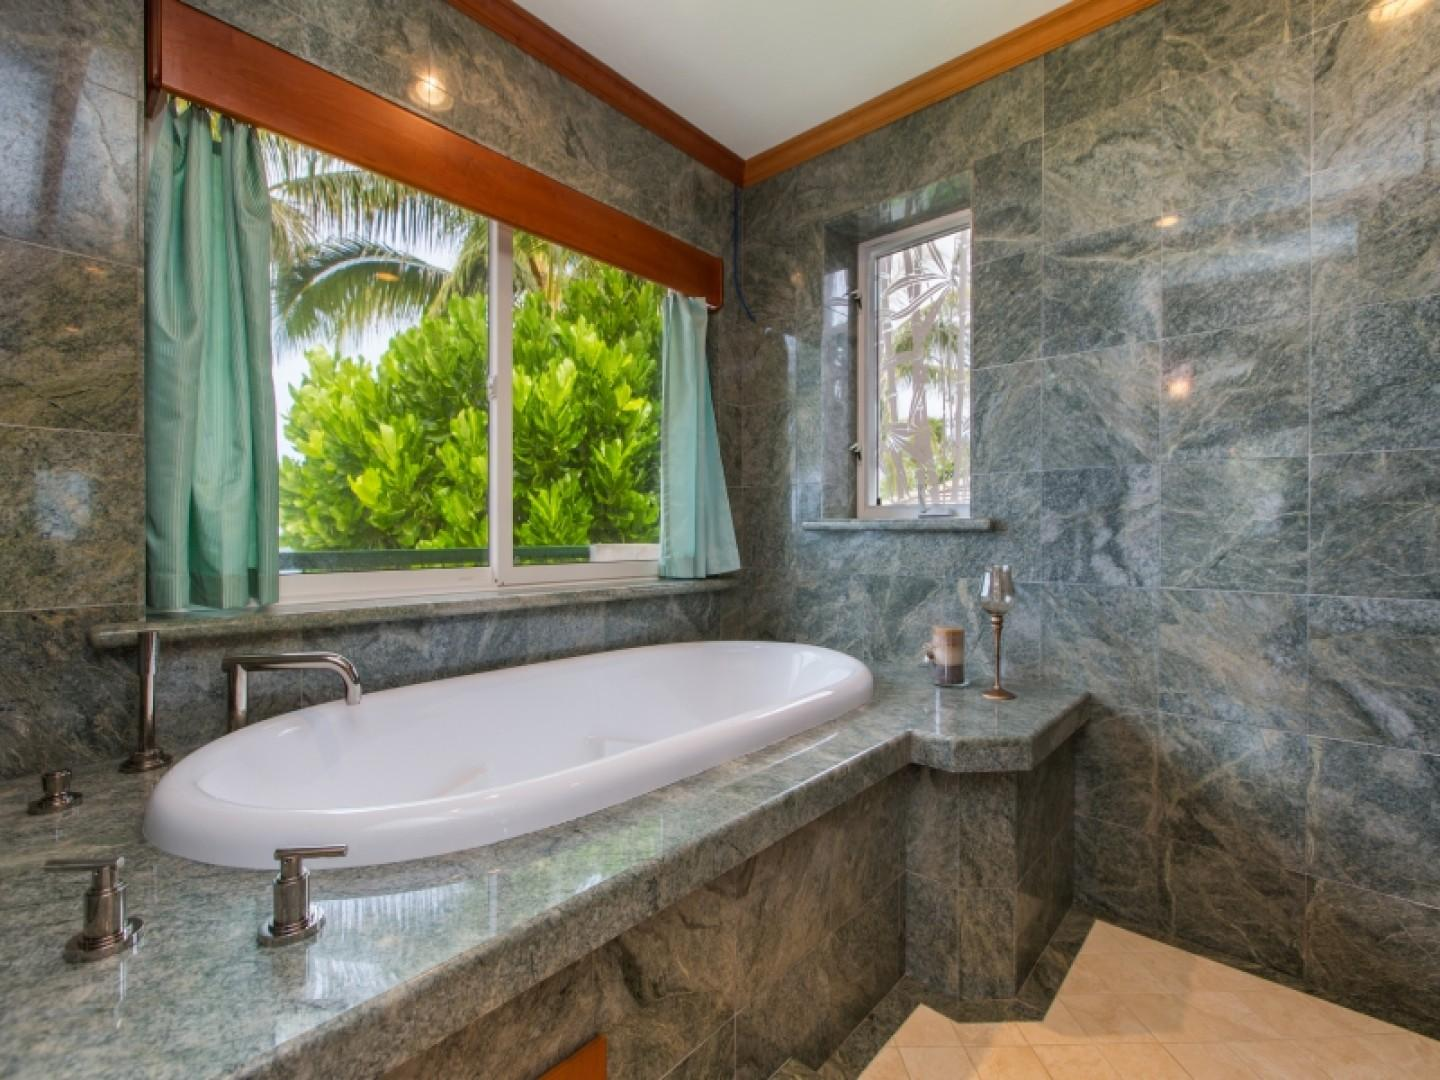 Master suite jacuzzi tub with ocean view.